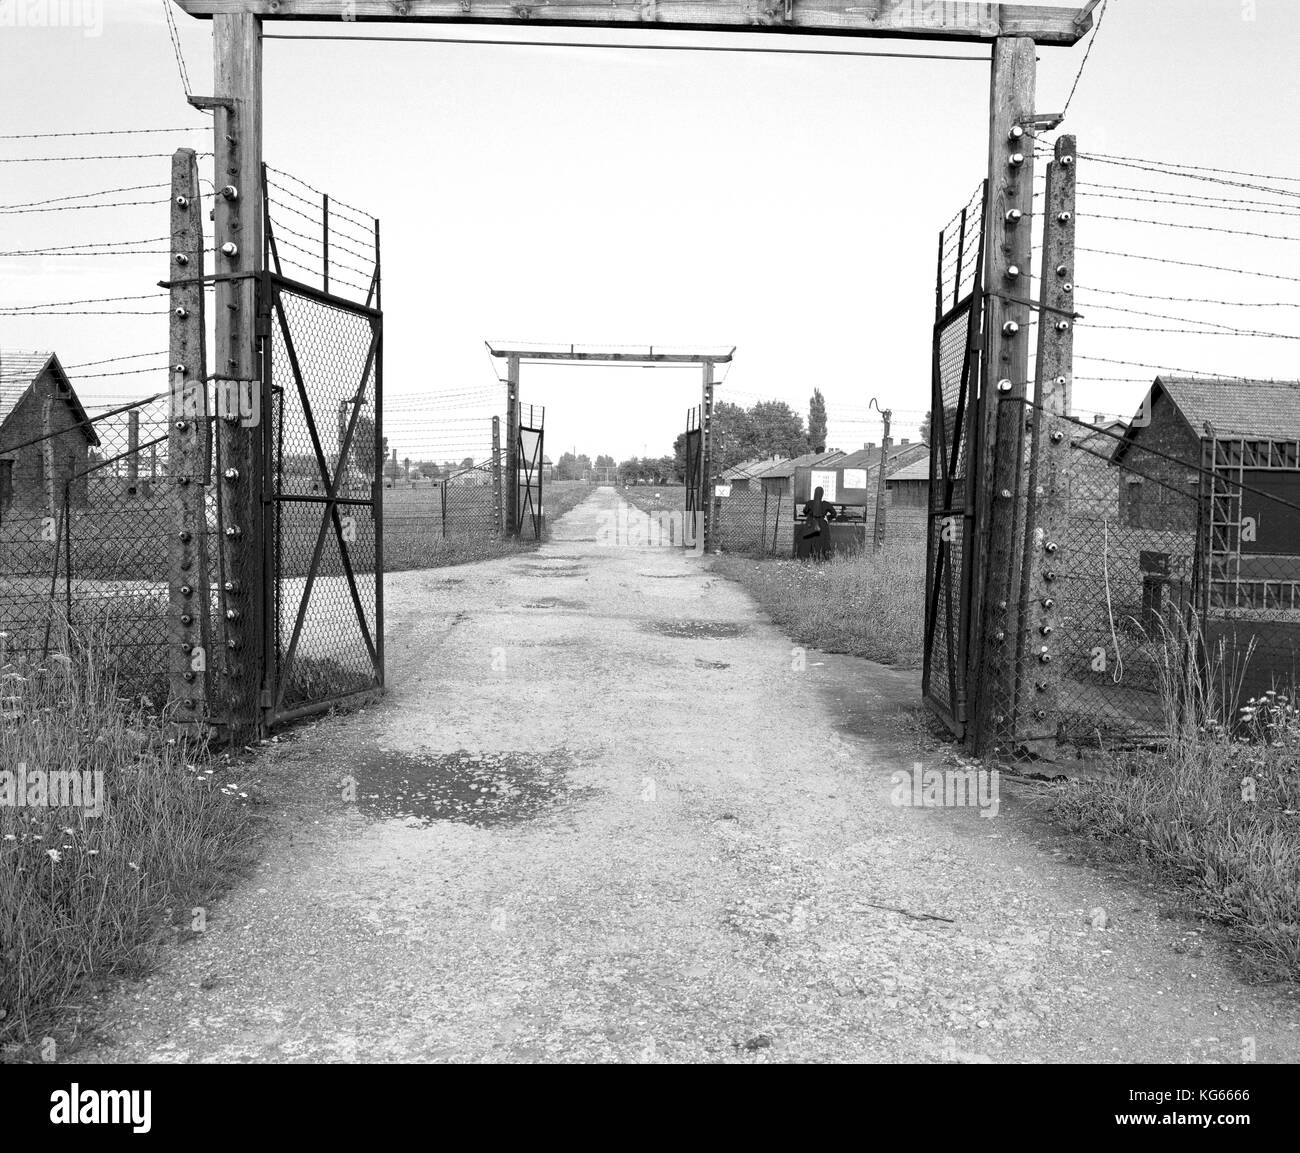 Where Was The Auschwitz Camp Located: Kapo Black And White Stock Photos & Images